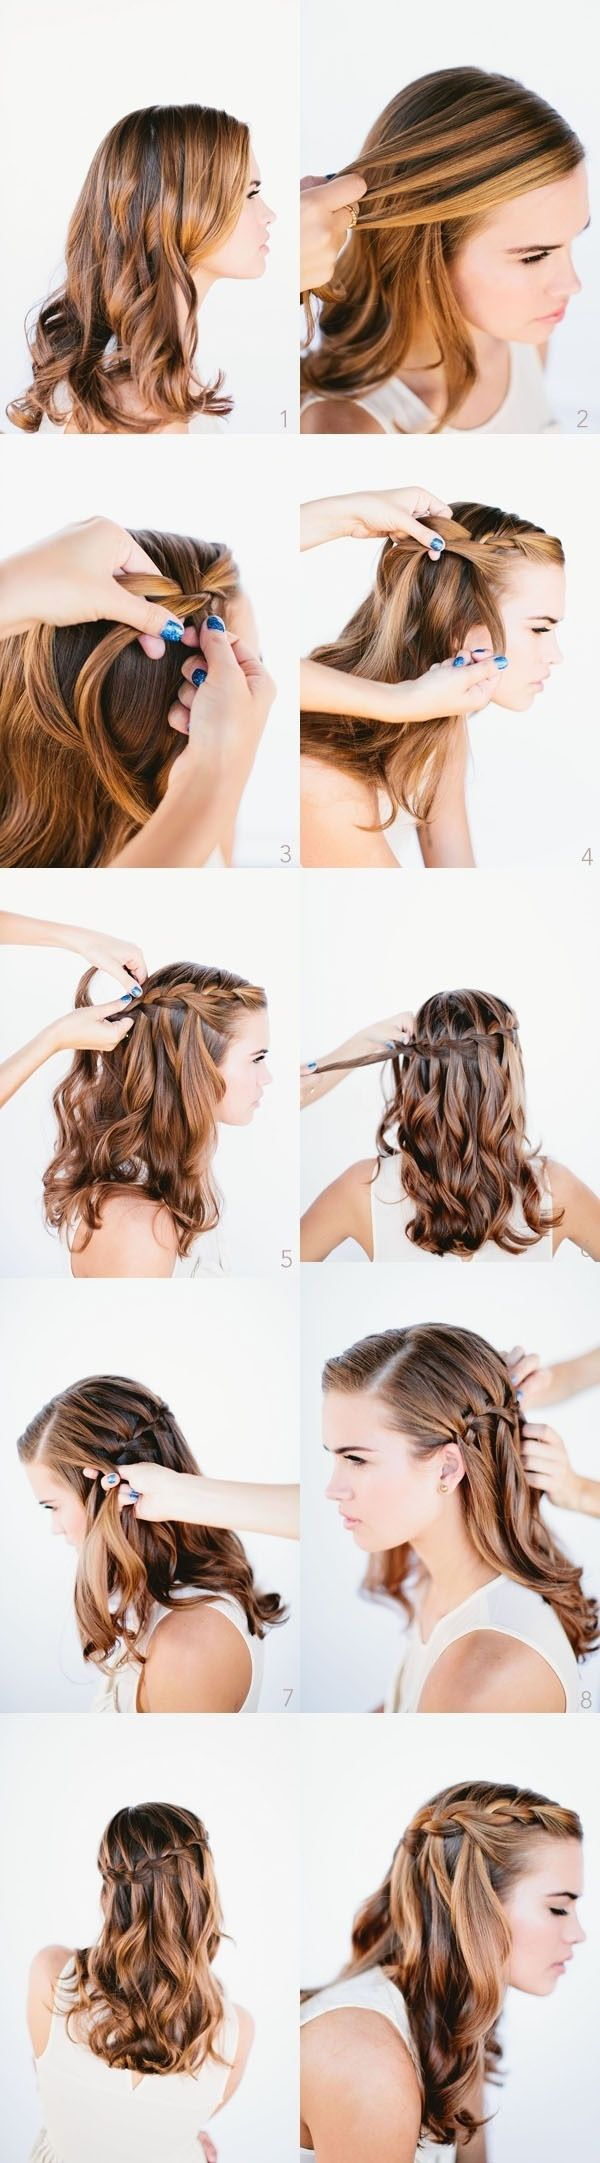 Andrea Russett - Straight haircut for long hair. I'm using this for hairstyle inspiration. @ http://seduhairstylestips.com